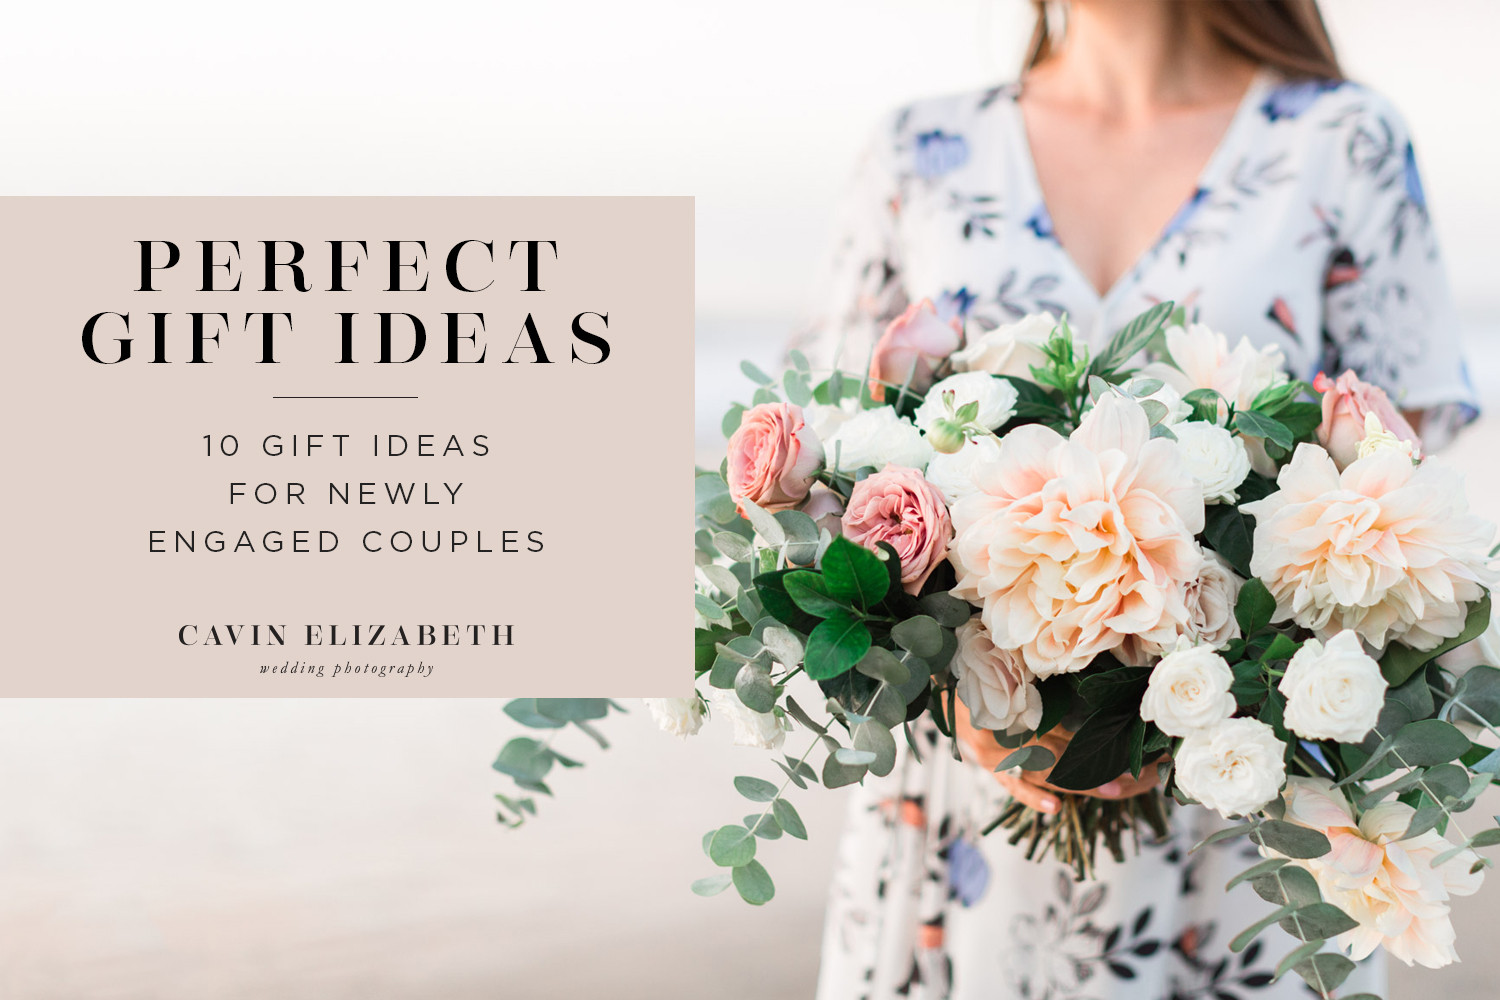 Gift Ideas For Engaged Couples  10 Ideas for Wedding Gifts for Newly Engaged Couples in 2018